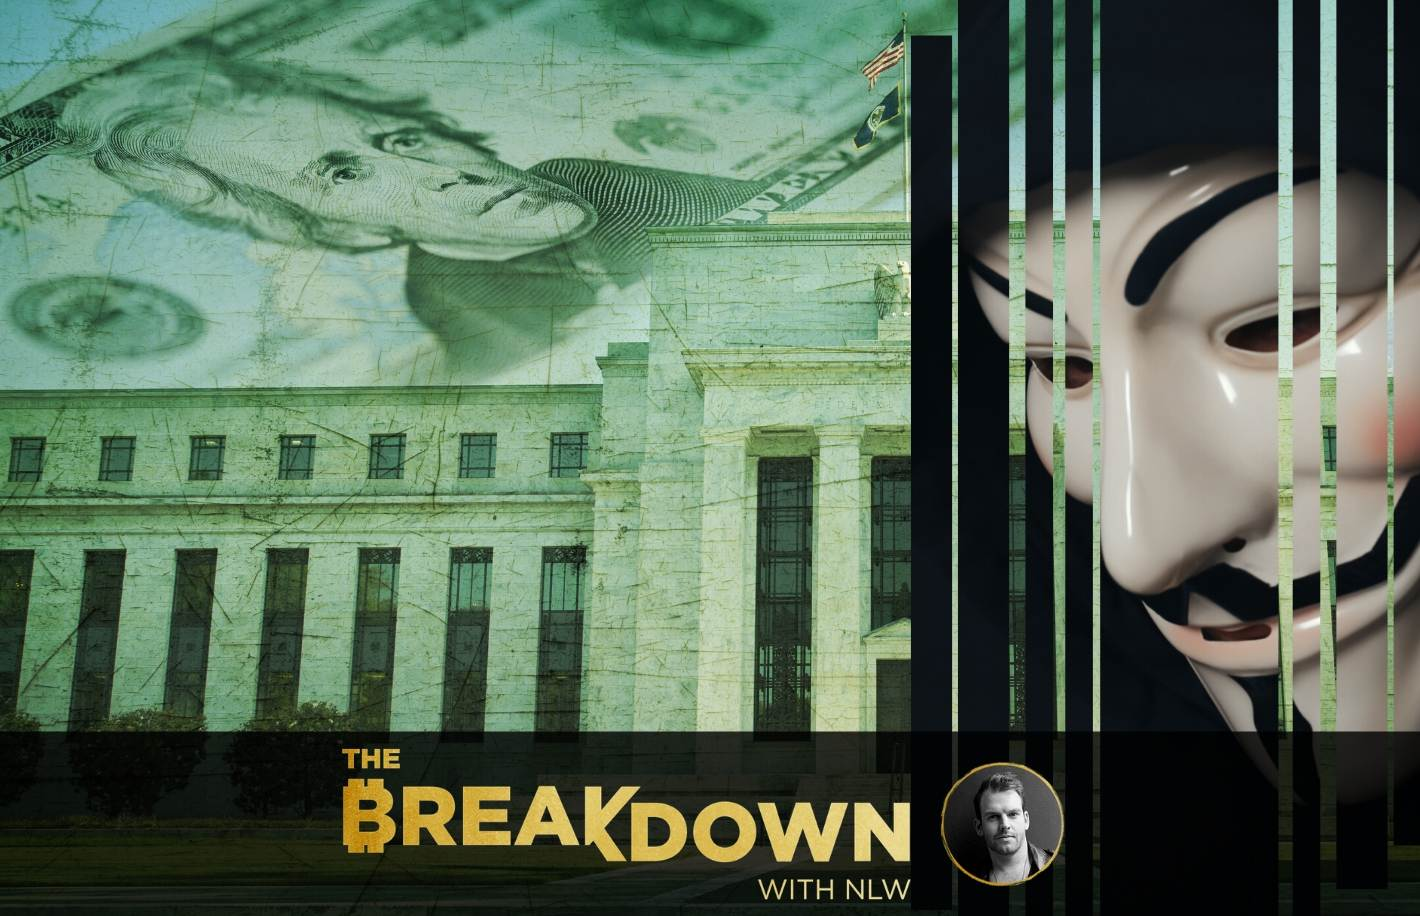 The Federal Reserve Has Its 'Come to Satoshi' Moment - CoinDesk